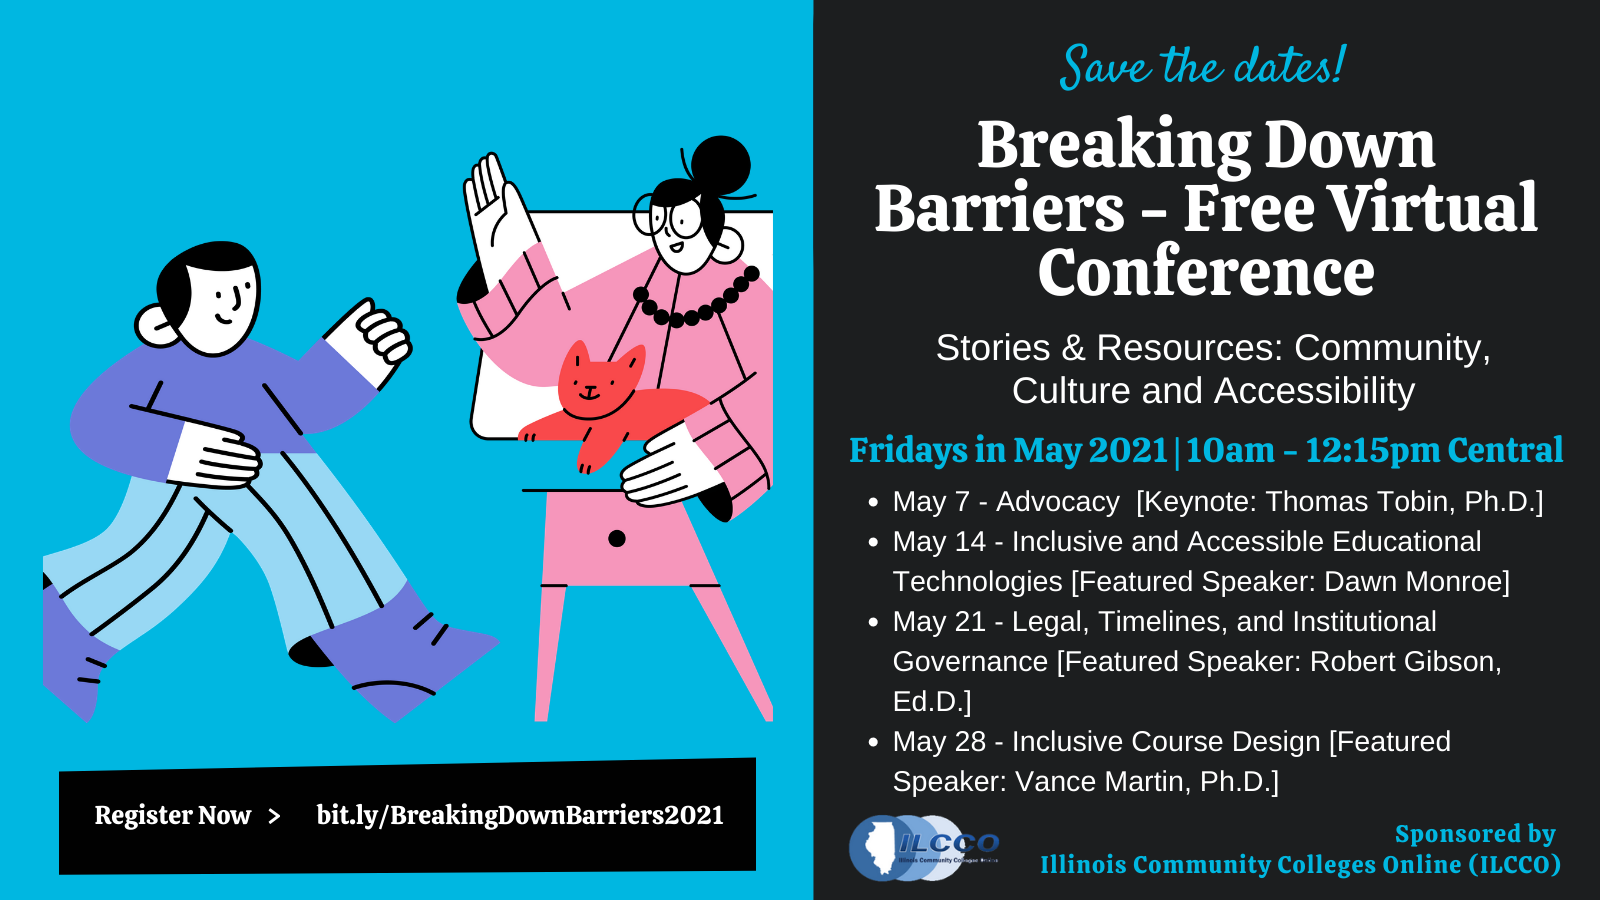 Save the dates! Breaking Down Barriers - Free Virtual Conference. Stories & REsources: Community, Culture and Accessibility. Fridays in May 2021, 10 a.m.-12:15 p.m. Central. May 7 - Advocacy (Keynote: Thomas Tobin, Ph.D.). May 14 - Inclusive and Accessible Educational TEchnologies (Featured Speaker: Dawn Monroe). May 21 - LEgal, Timelines, and Institutional Governance (Featured Speaker: Robert Gibson, Ed.D.). May 28 - Inclusive Course Design (FEatured Speaker: Vance Martin, Ph.D.). REgister Now at bit..ly/BreakingDownBarriers2021. Sponsored by Illinois Community Colleges Online (ILCCO).